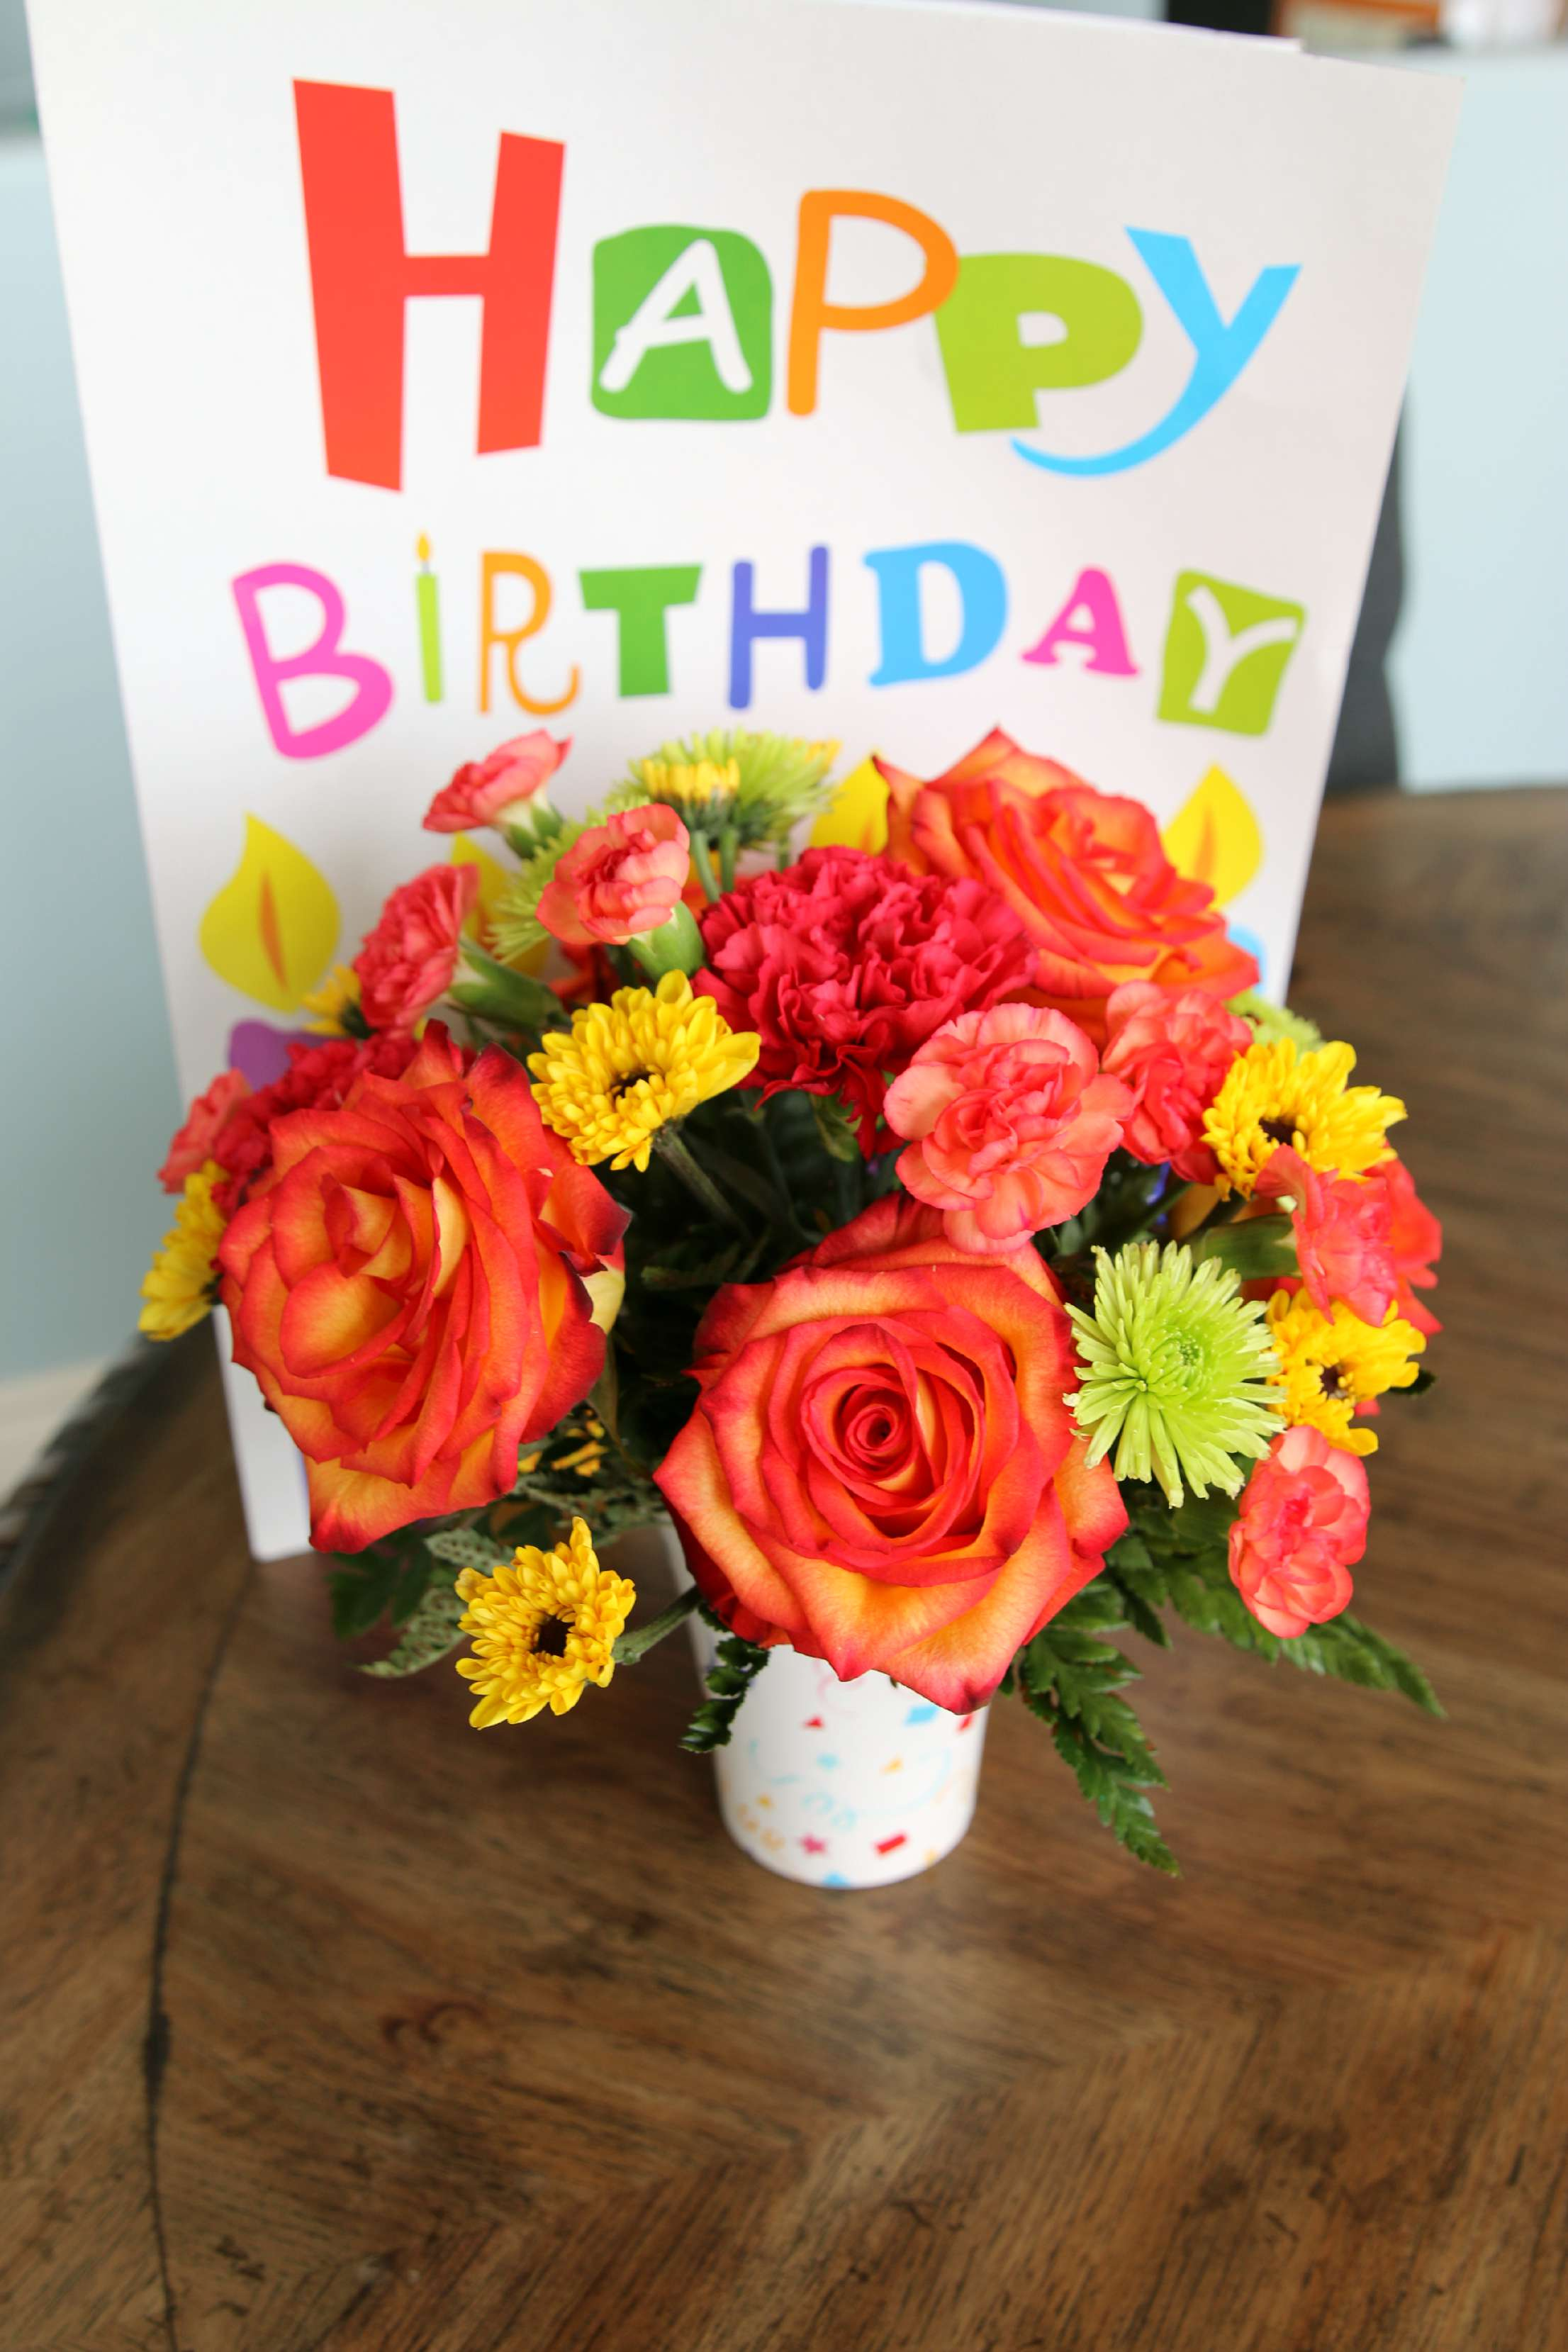 How My Birthday Was Brightened With A Teleflora Bouquet Its A